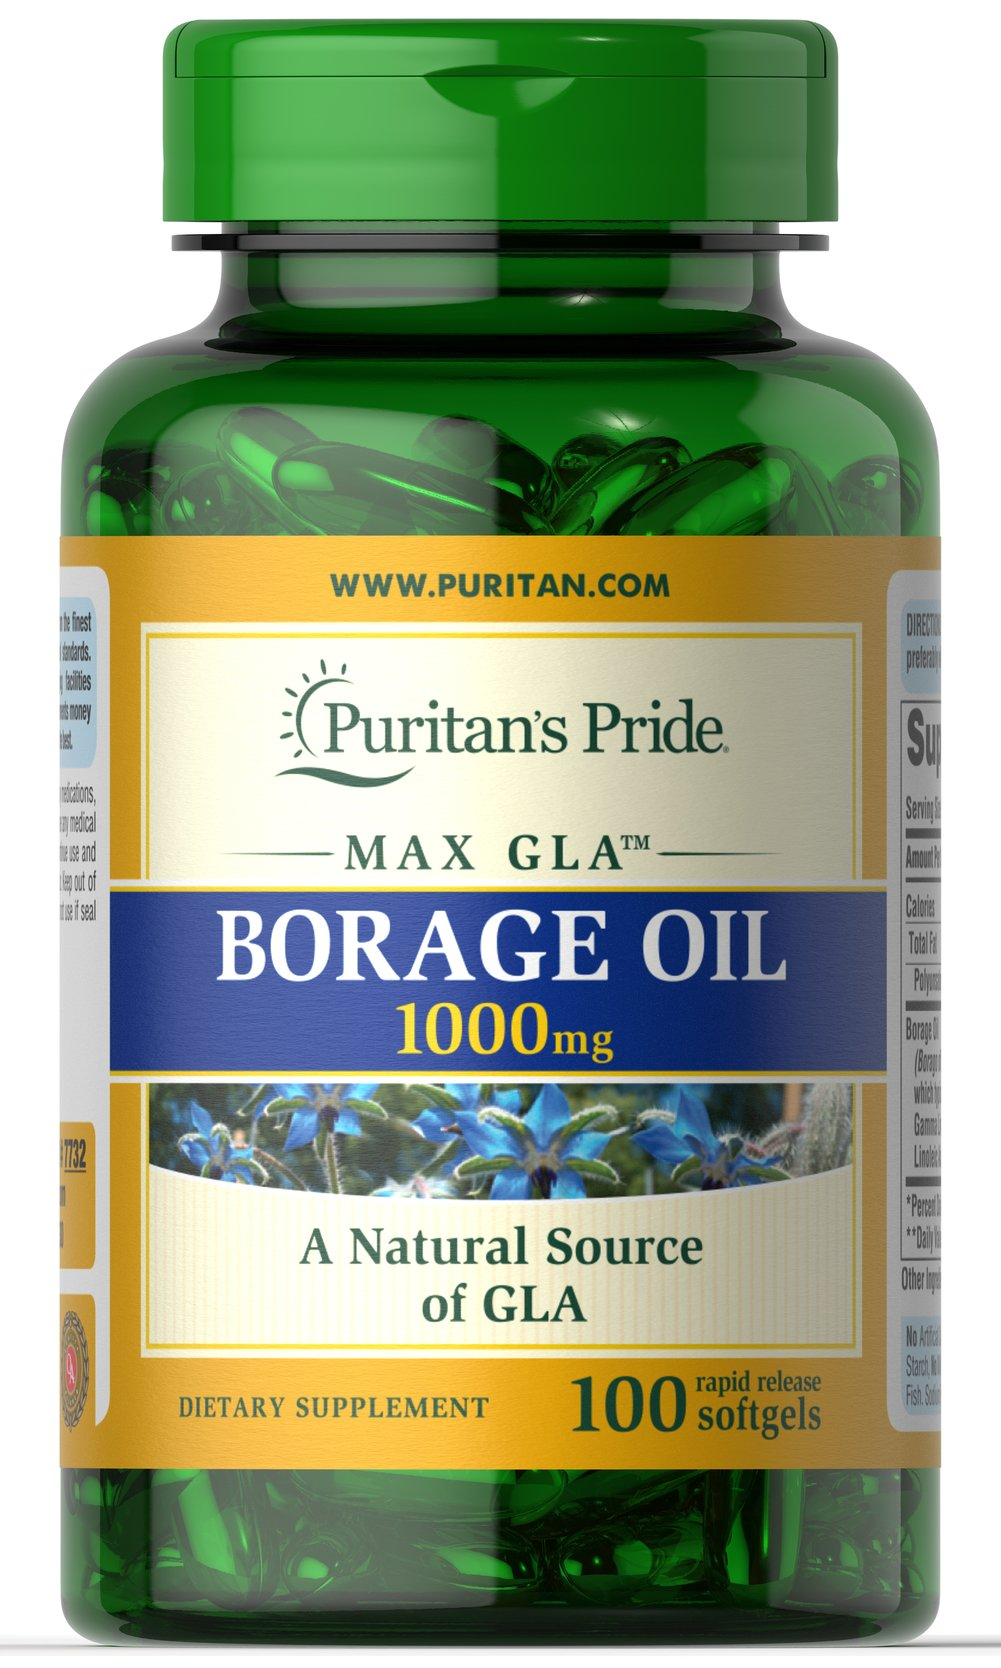 Borage Oil 1000 mg <p>Borage Oil is an excellent plant source of the Omega-6 fatty acid Gamma Linolenic Acid (GLA). Perfect for people on low-fat diets, Borage Oil assists in the production of prostaglandins and supports cellular and metabolic health.** Research indicates that GLA is also beneficial for women's health.** Our 1000 mg softgels typically contain 190 mg of GLA and 350 mg of Linoleic Acid.</p> 100 Softgels 1000 mg $22.38